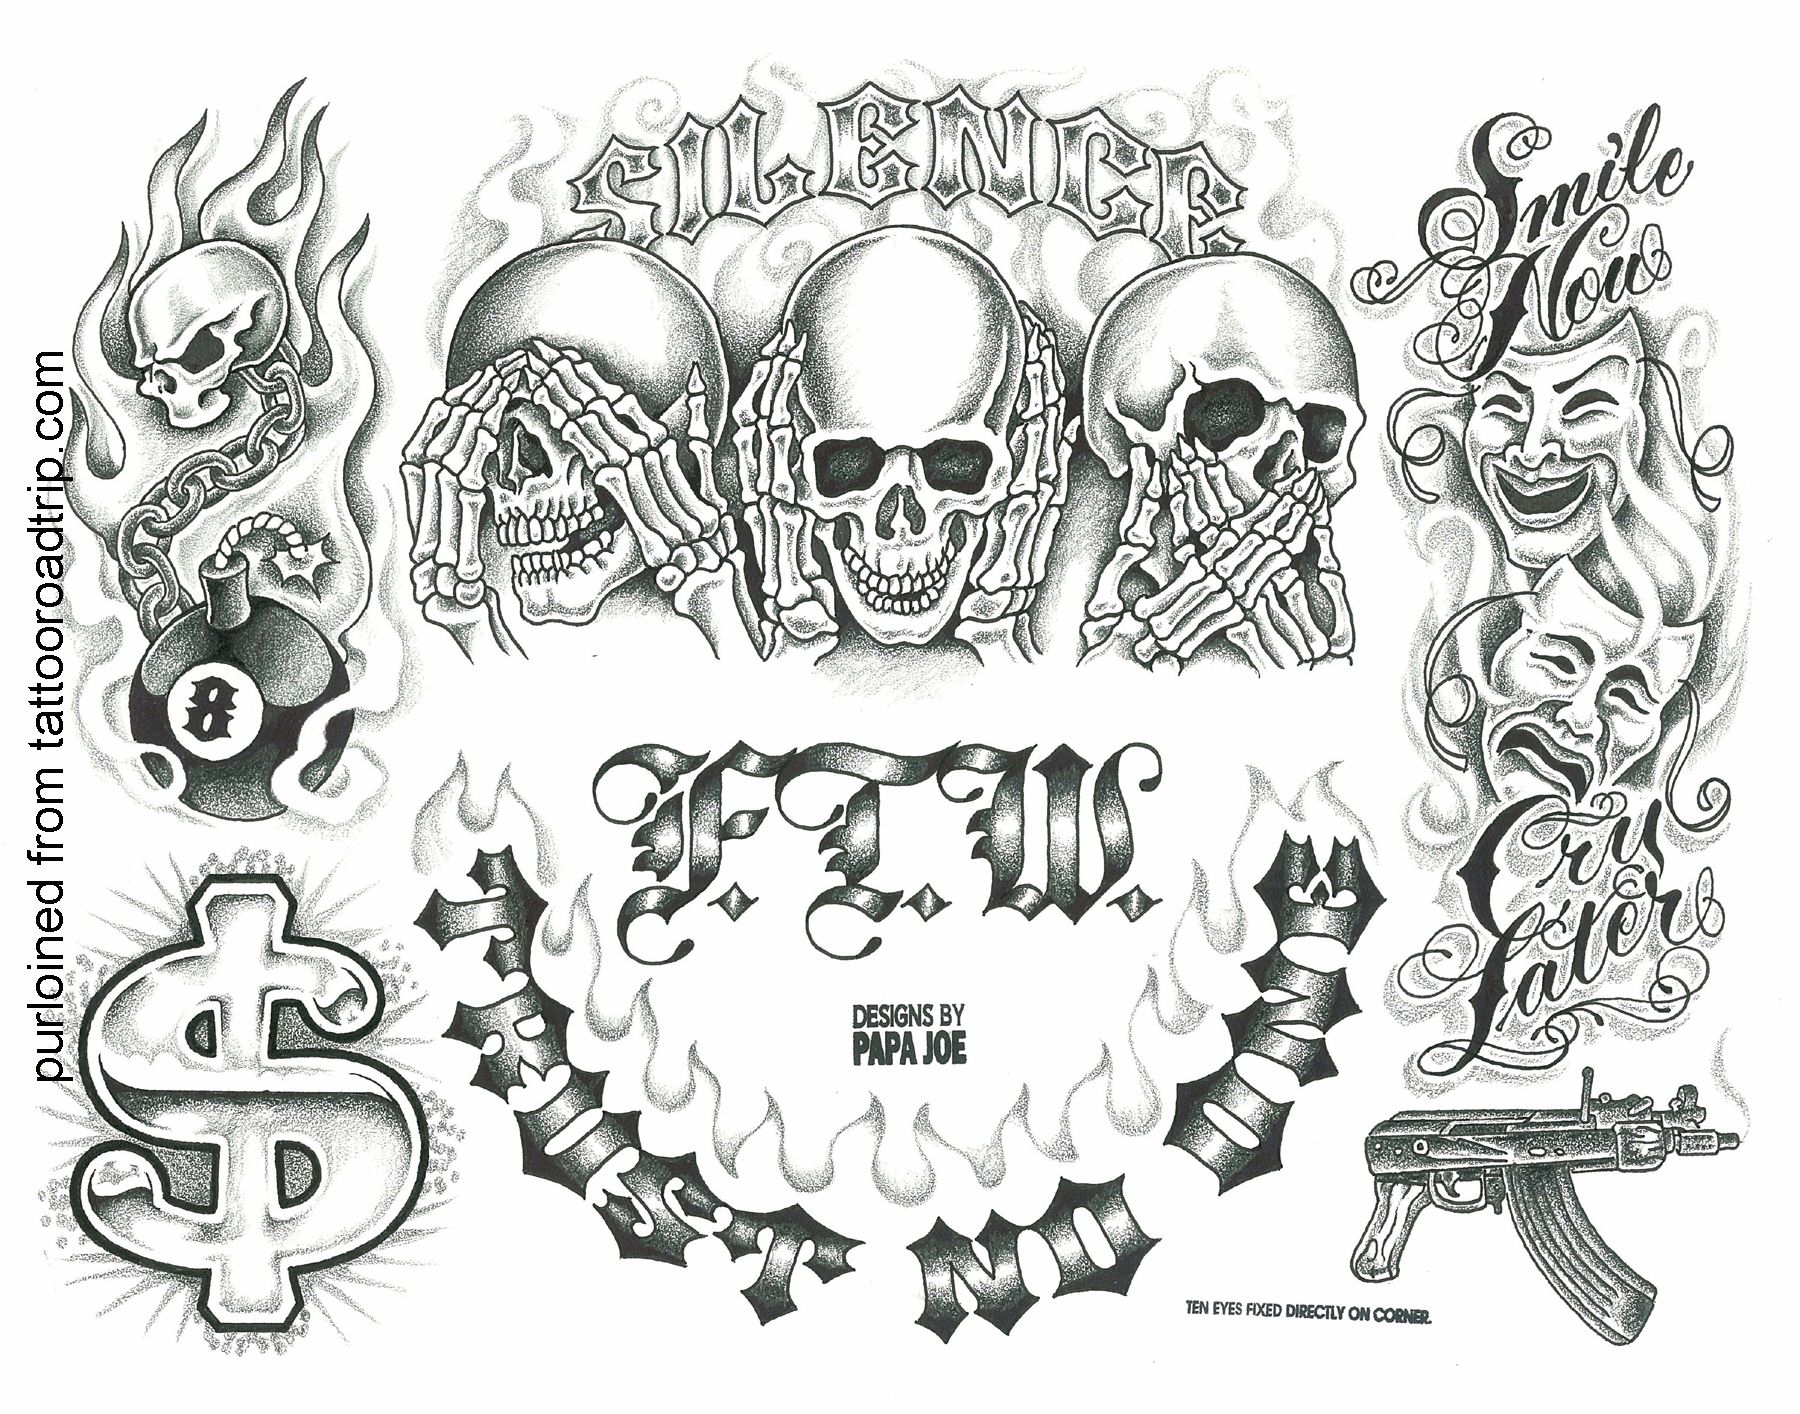 Posts From June 2010 On Baxter S Blog Tattoo Design Drawings Chicano Tattoos Tattoo Lettering Fonts